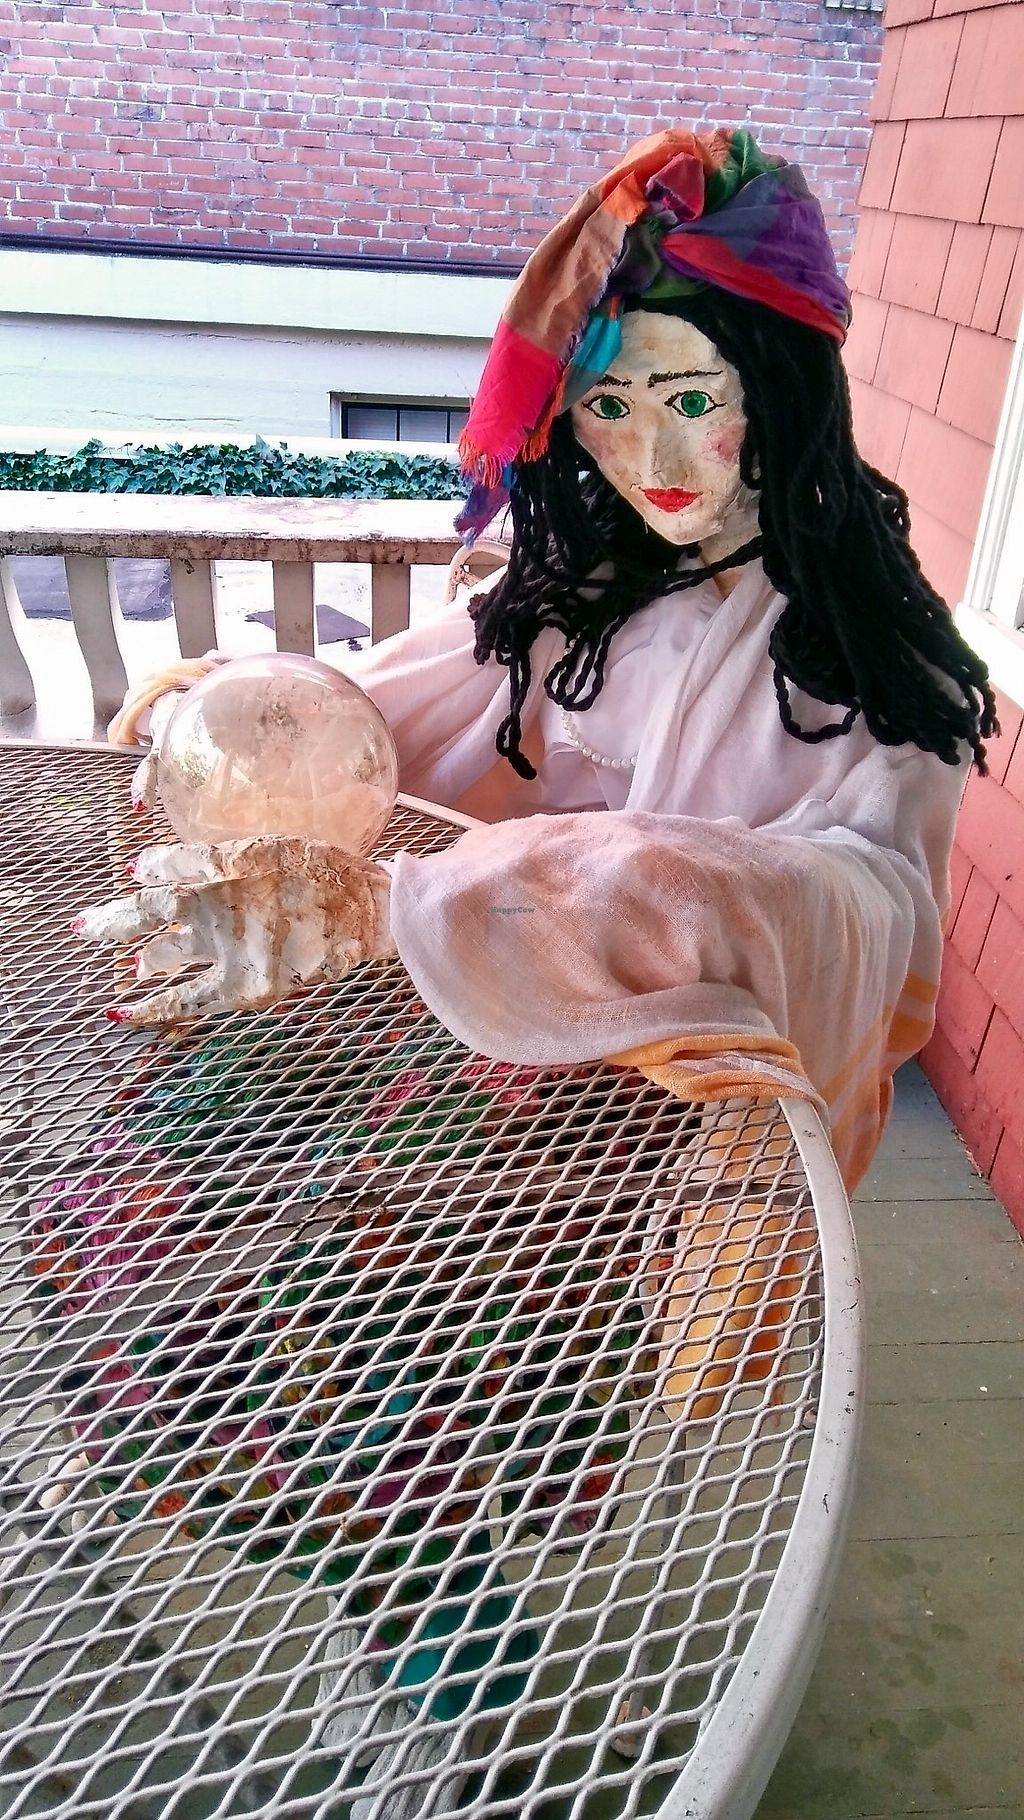 """Photo of The Cherokee Rose Inn  by <a href=""""/members/profile/eveyxvx"""">eveyxvx</a> <br/>Halloween at the Cherokee Rose Inn <br/> October 27, 2017  - <a href='/contact/abuse/image/29423/319278'>Report</a>"""